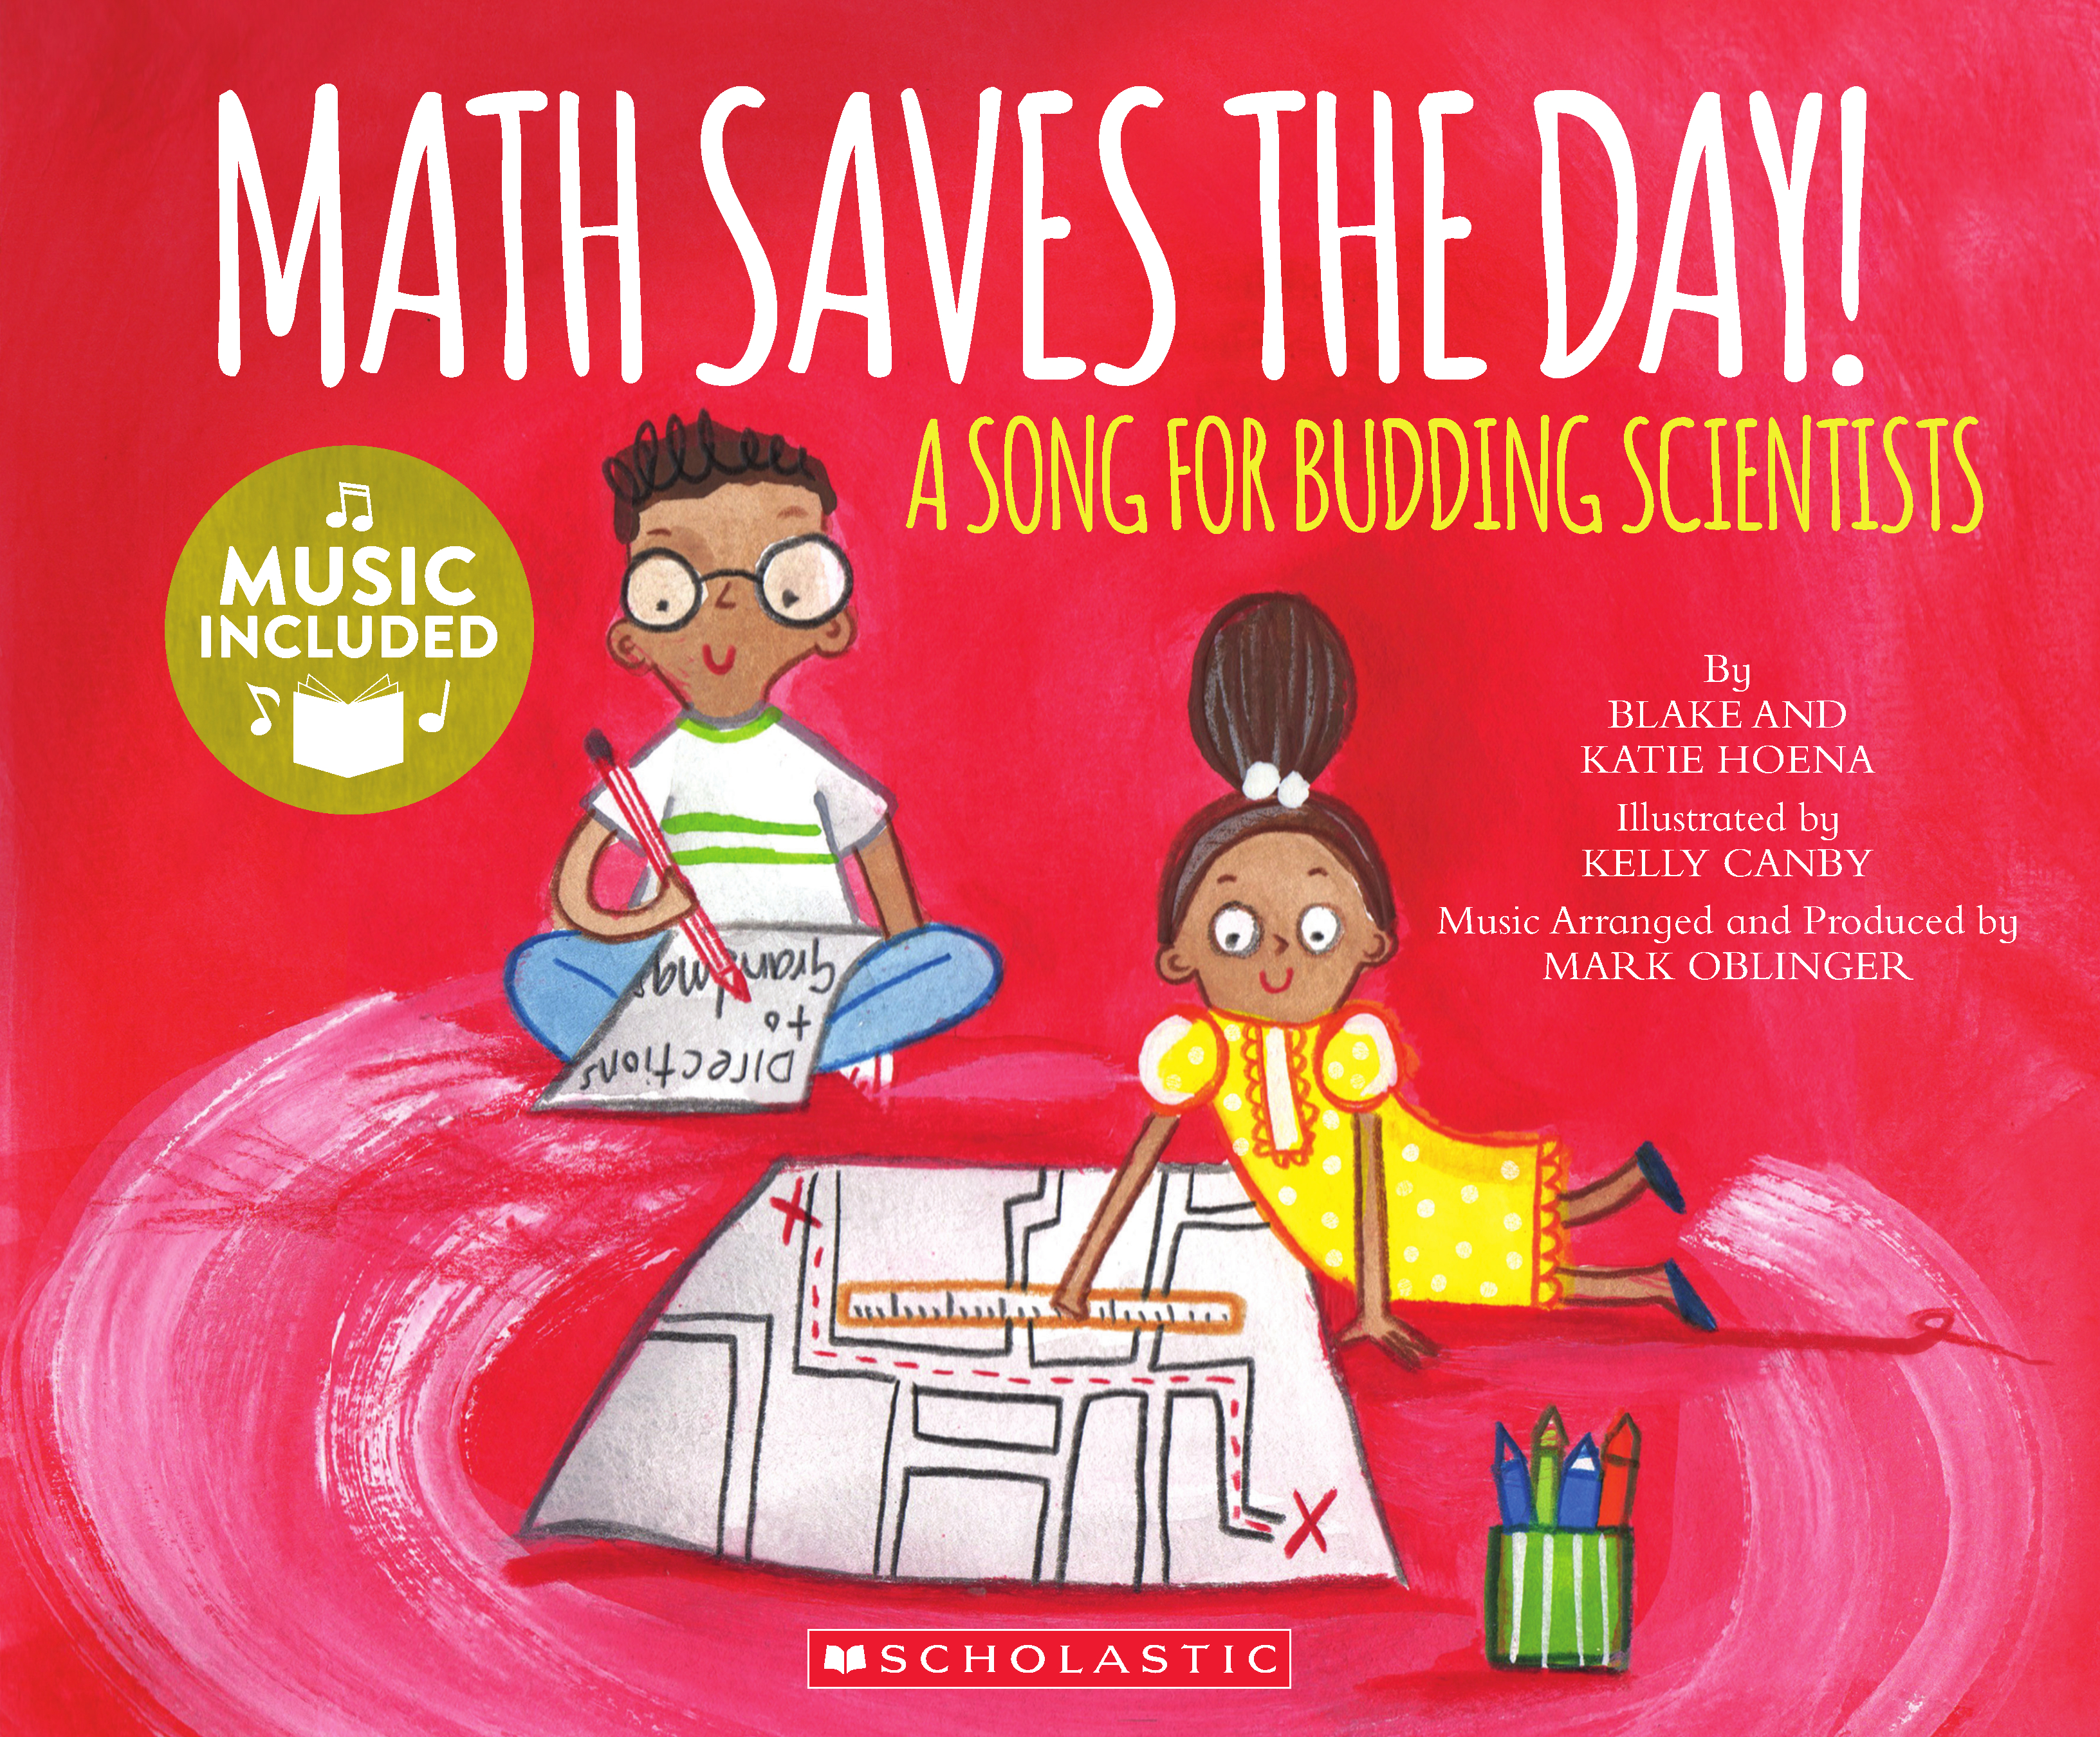 Math Saves The Day! A Song For Budding Scientists